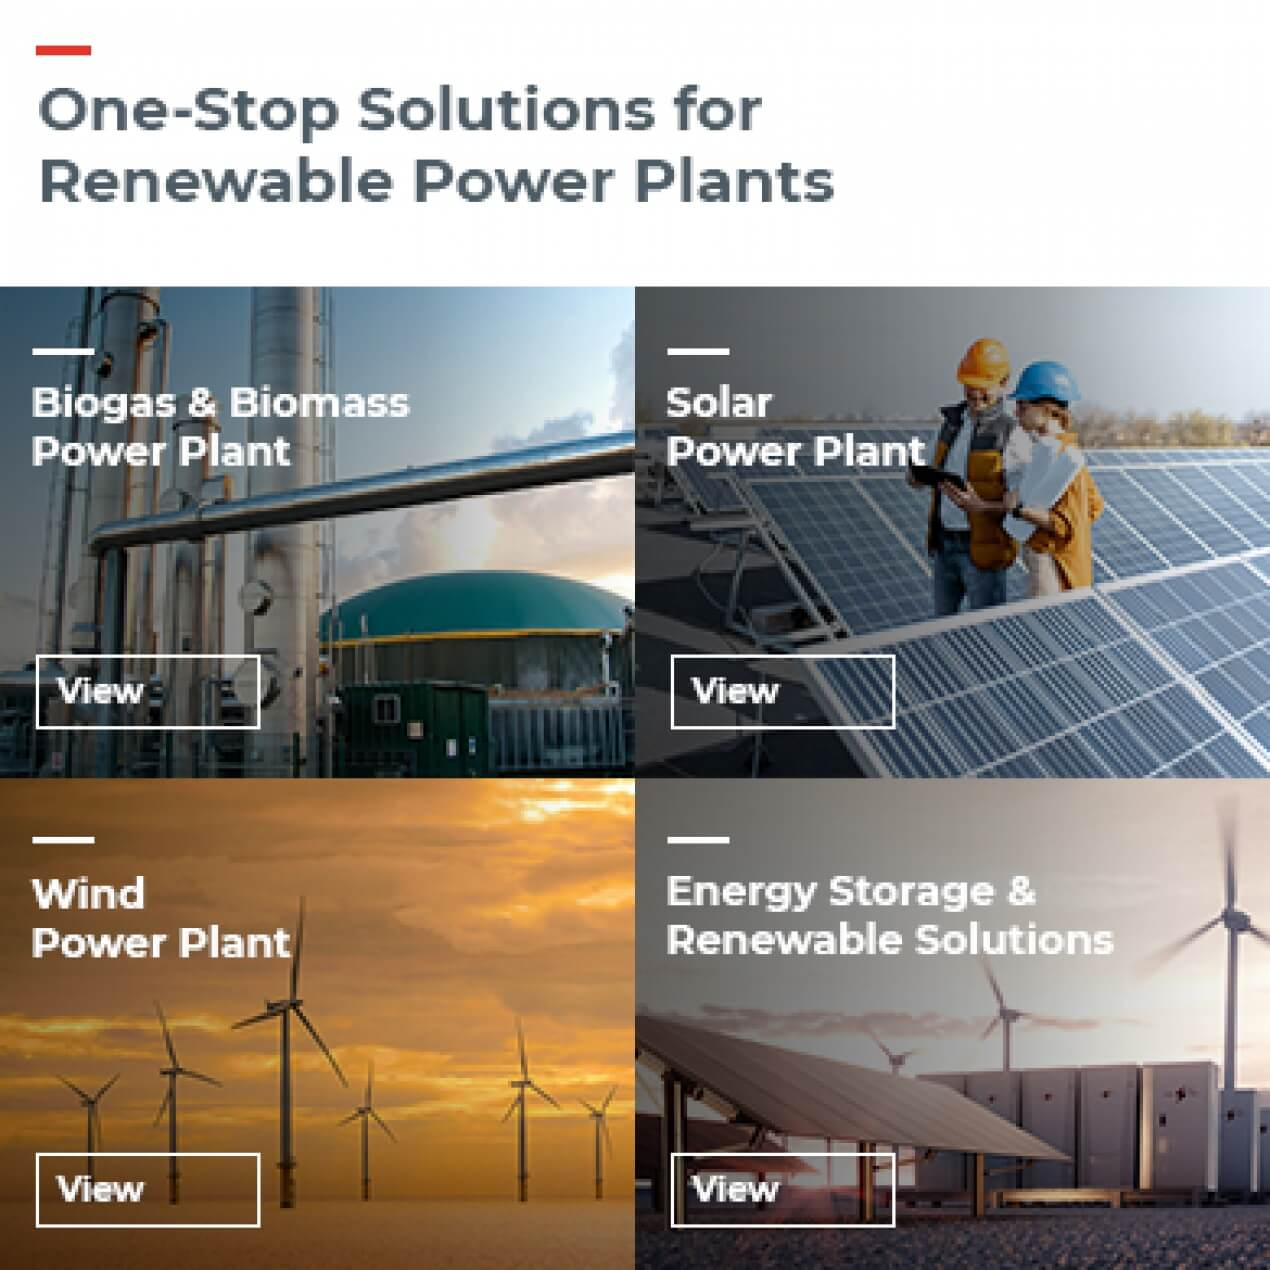 Renewable Energy and Solutions